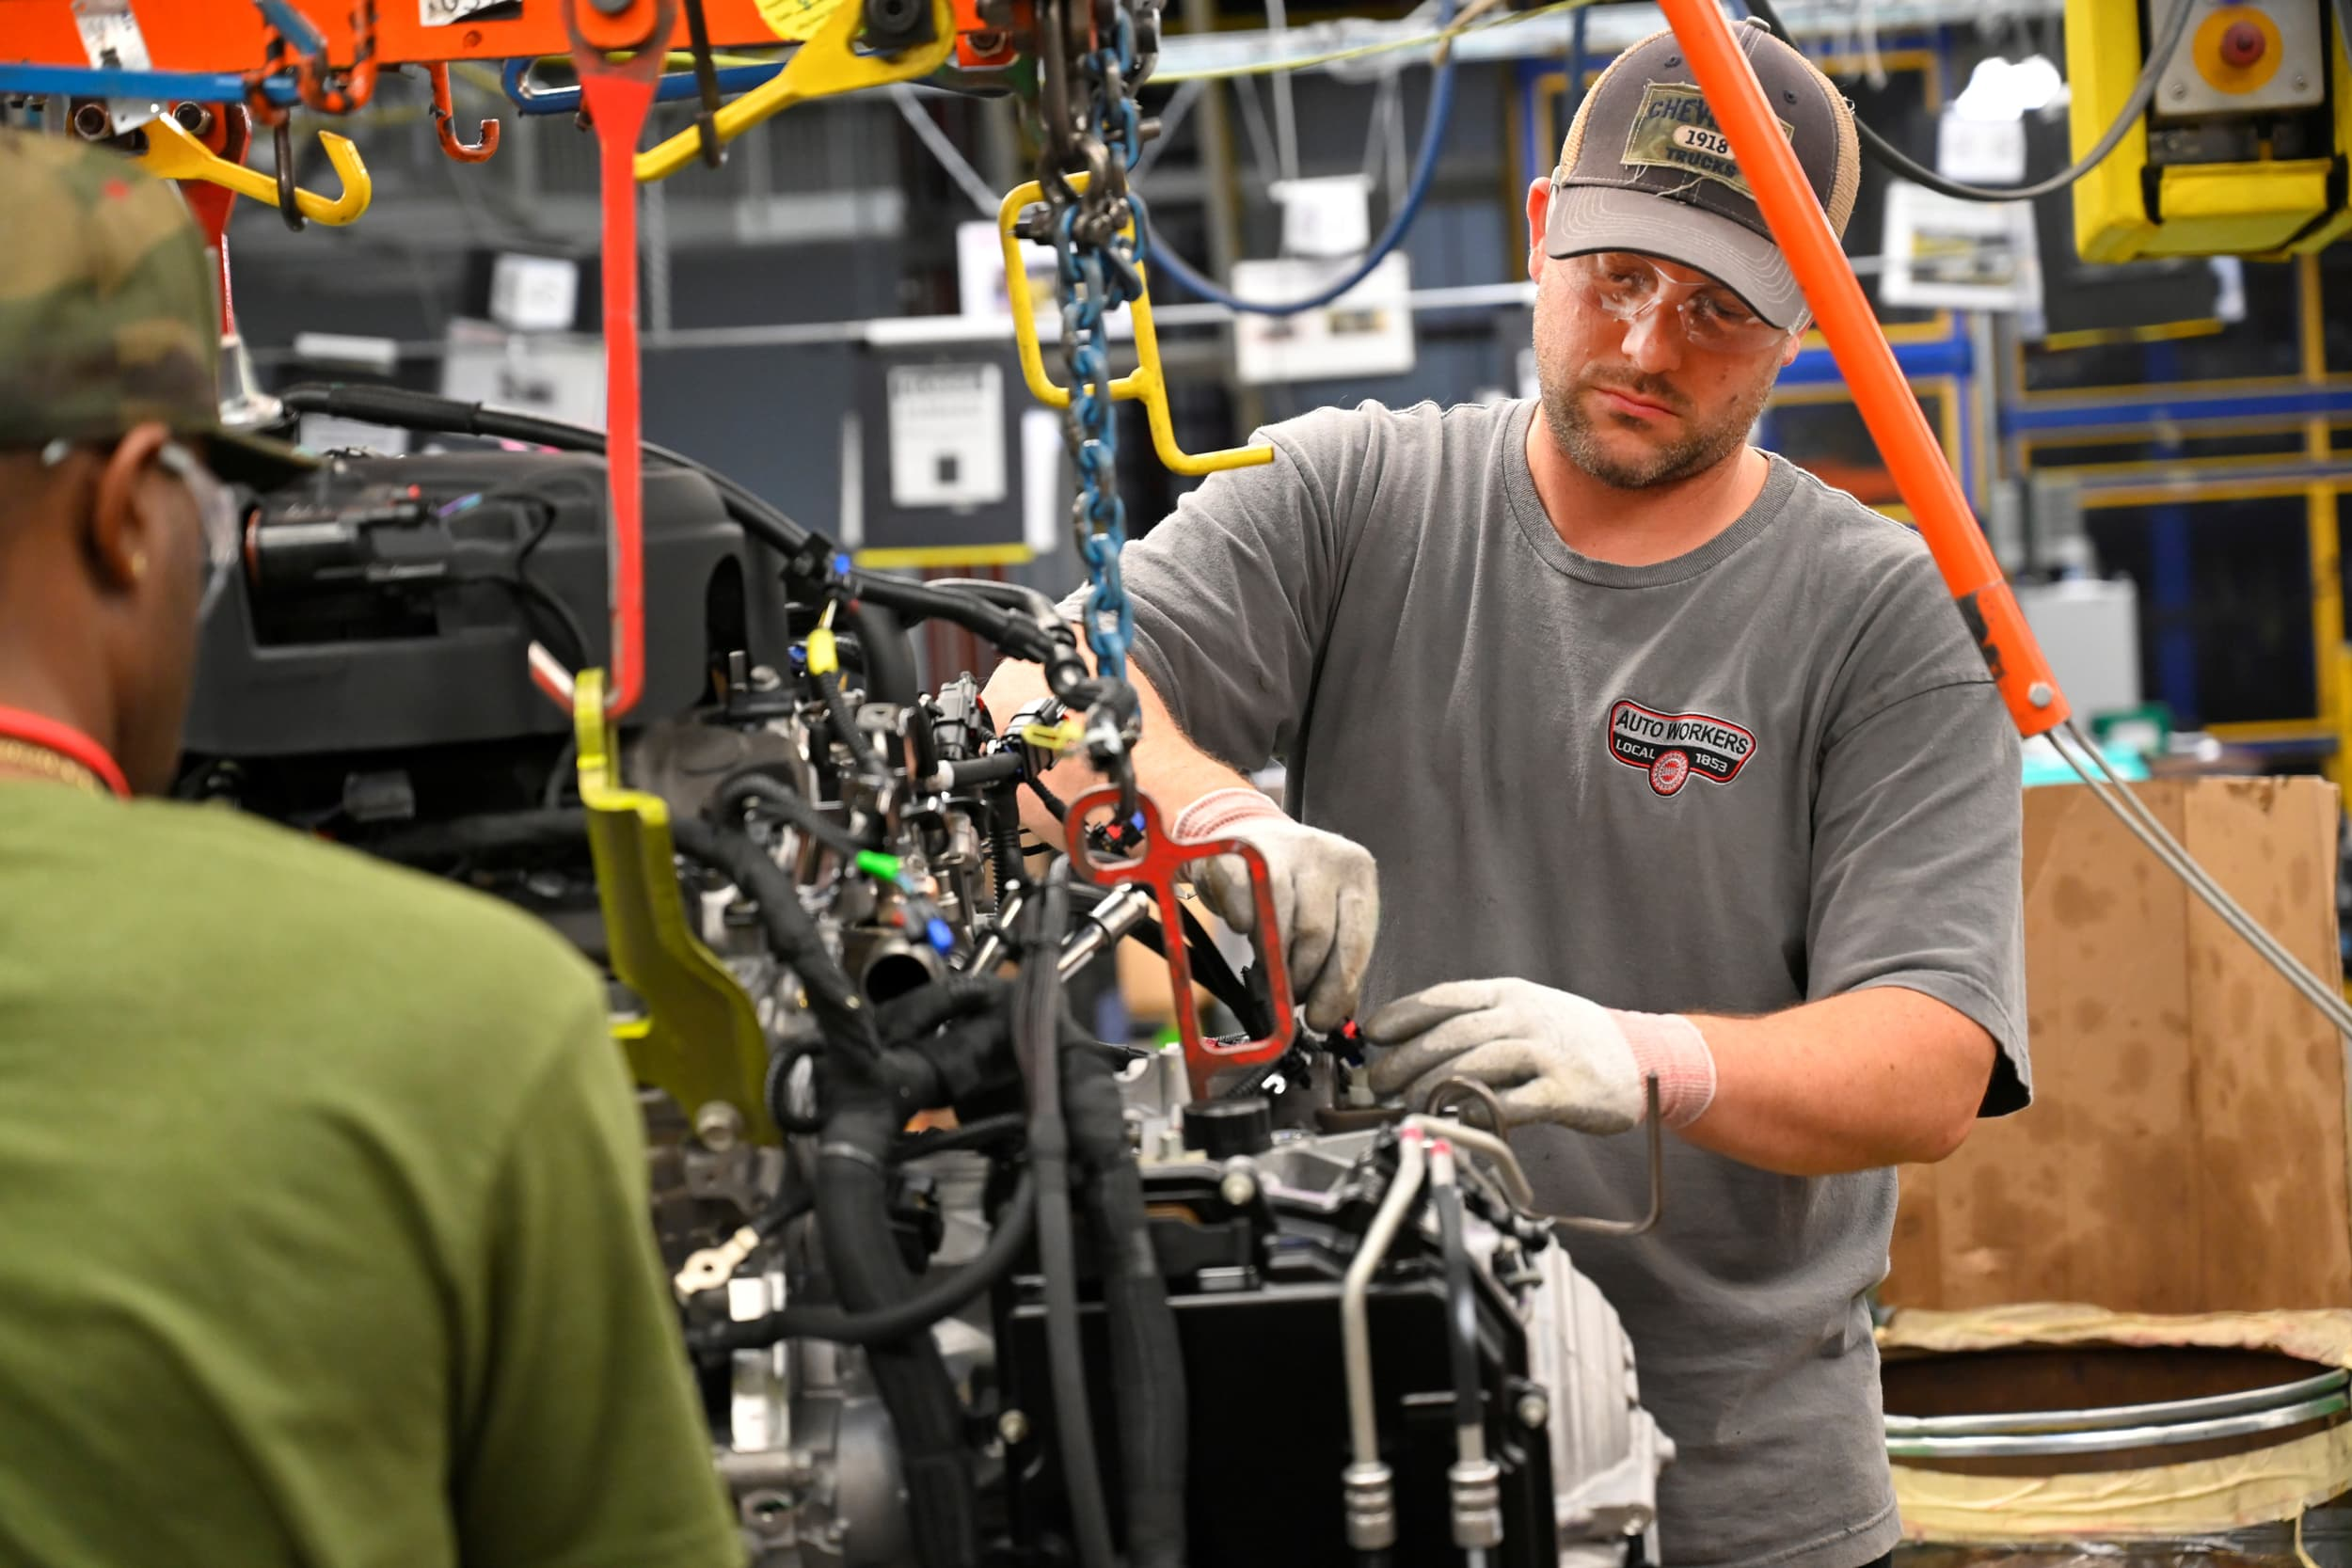 US productivity rebounds in fourth quarter as labor costs growth slows